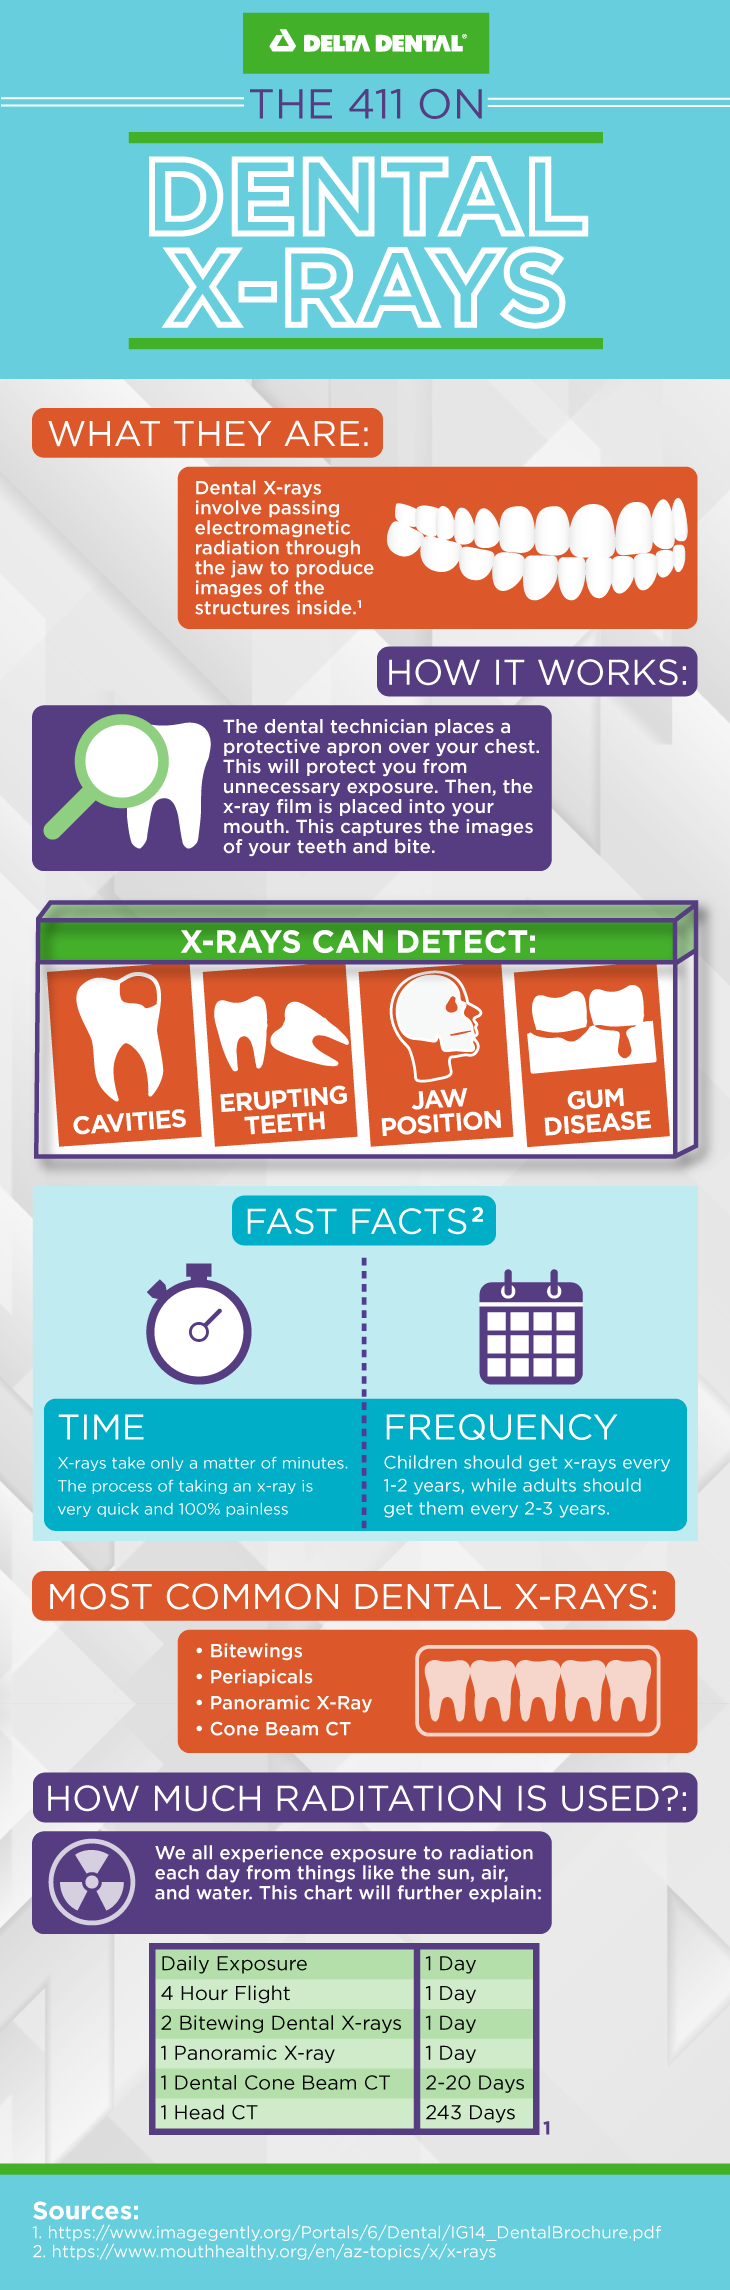 Dental x-rays allow for dentists to study the condition of your mouth with deeper detail than a visual exam.